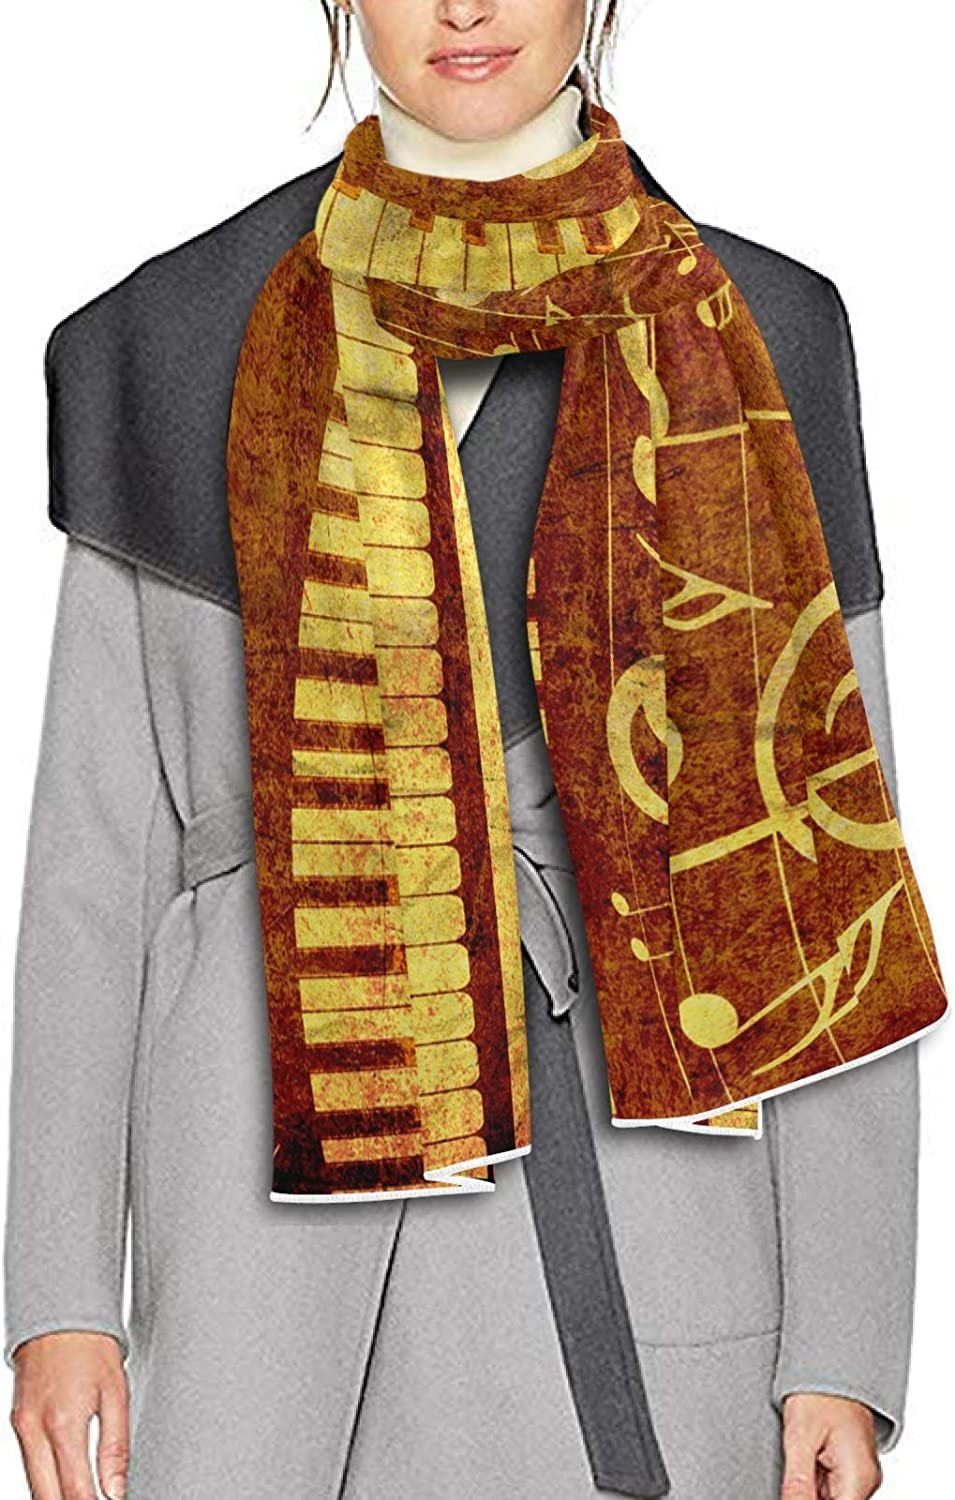 Scarf for Women and Men Piano Keys Musical Notes Blanket Shawl Scarf wraps Thick Soft Winter Large Scarves Lightweight